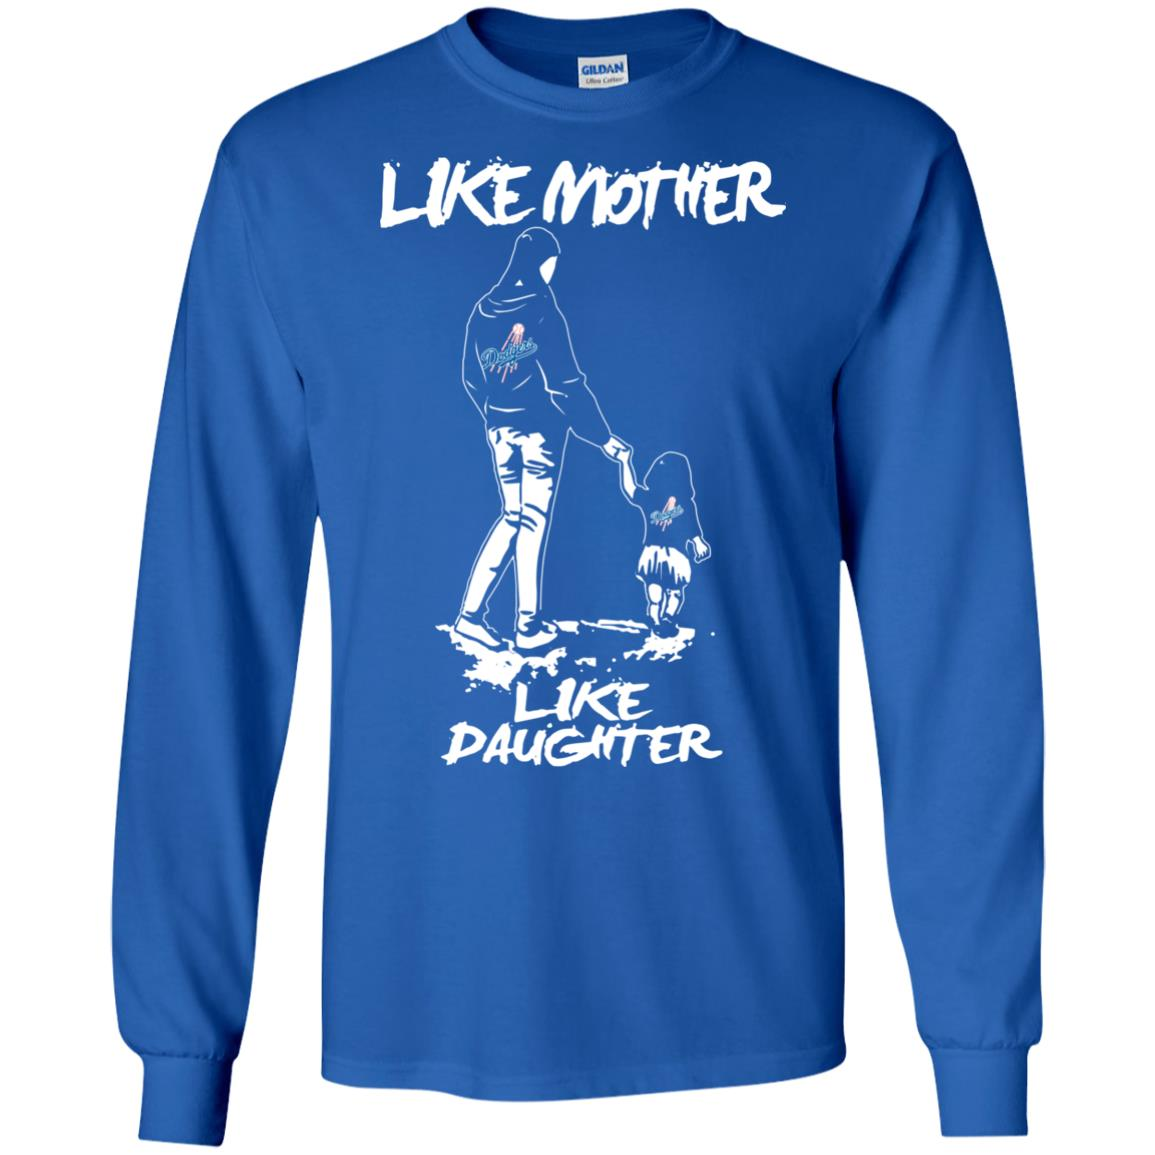 Like Mother Like Daughter Los Angeles Dodgers T Shirts